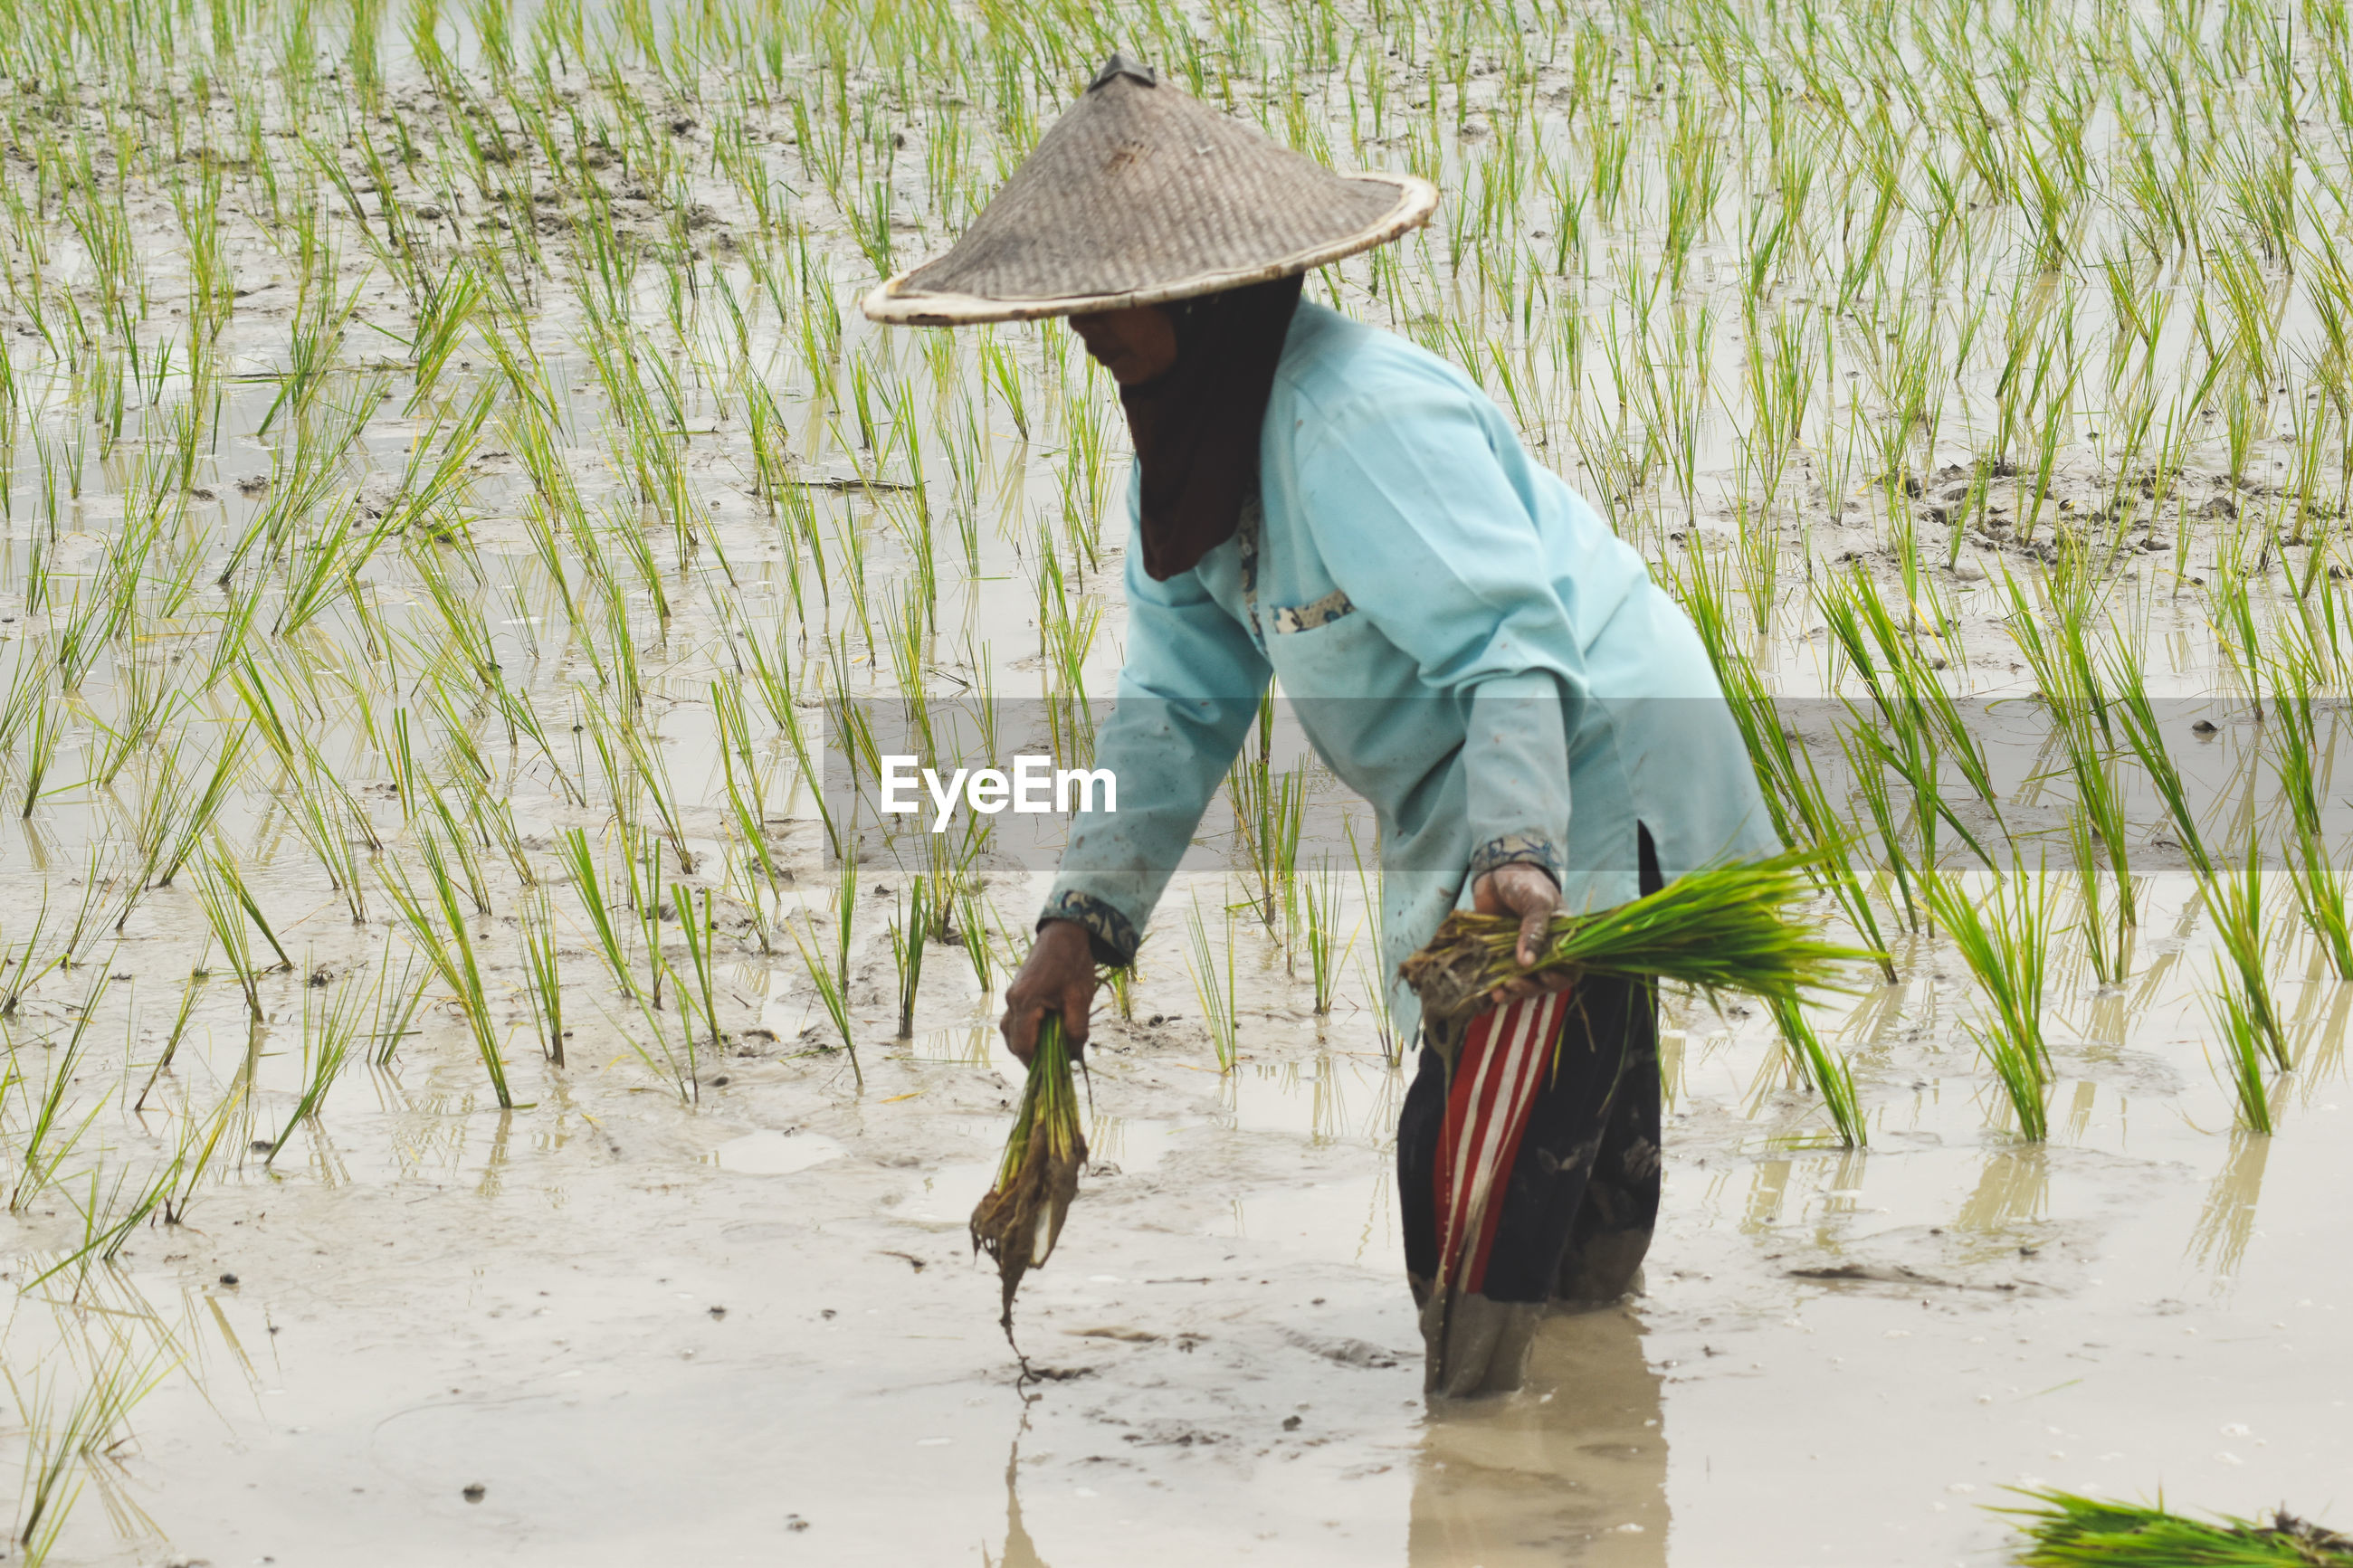 Female farmer working on agricultural field